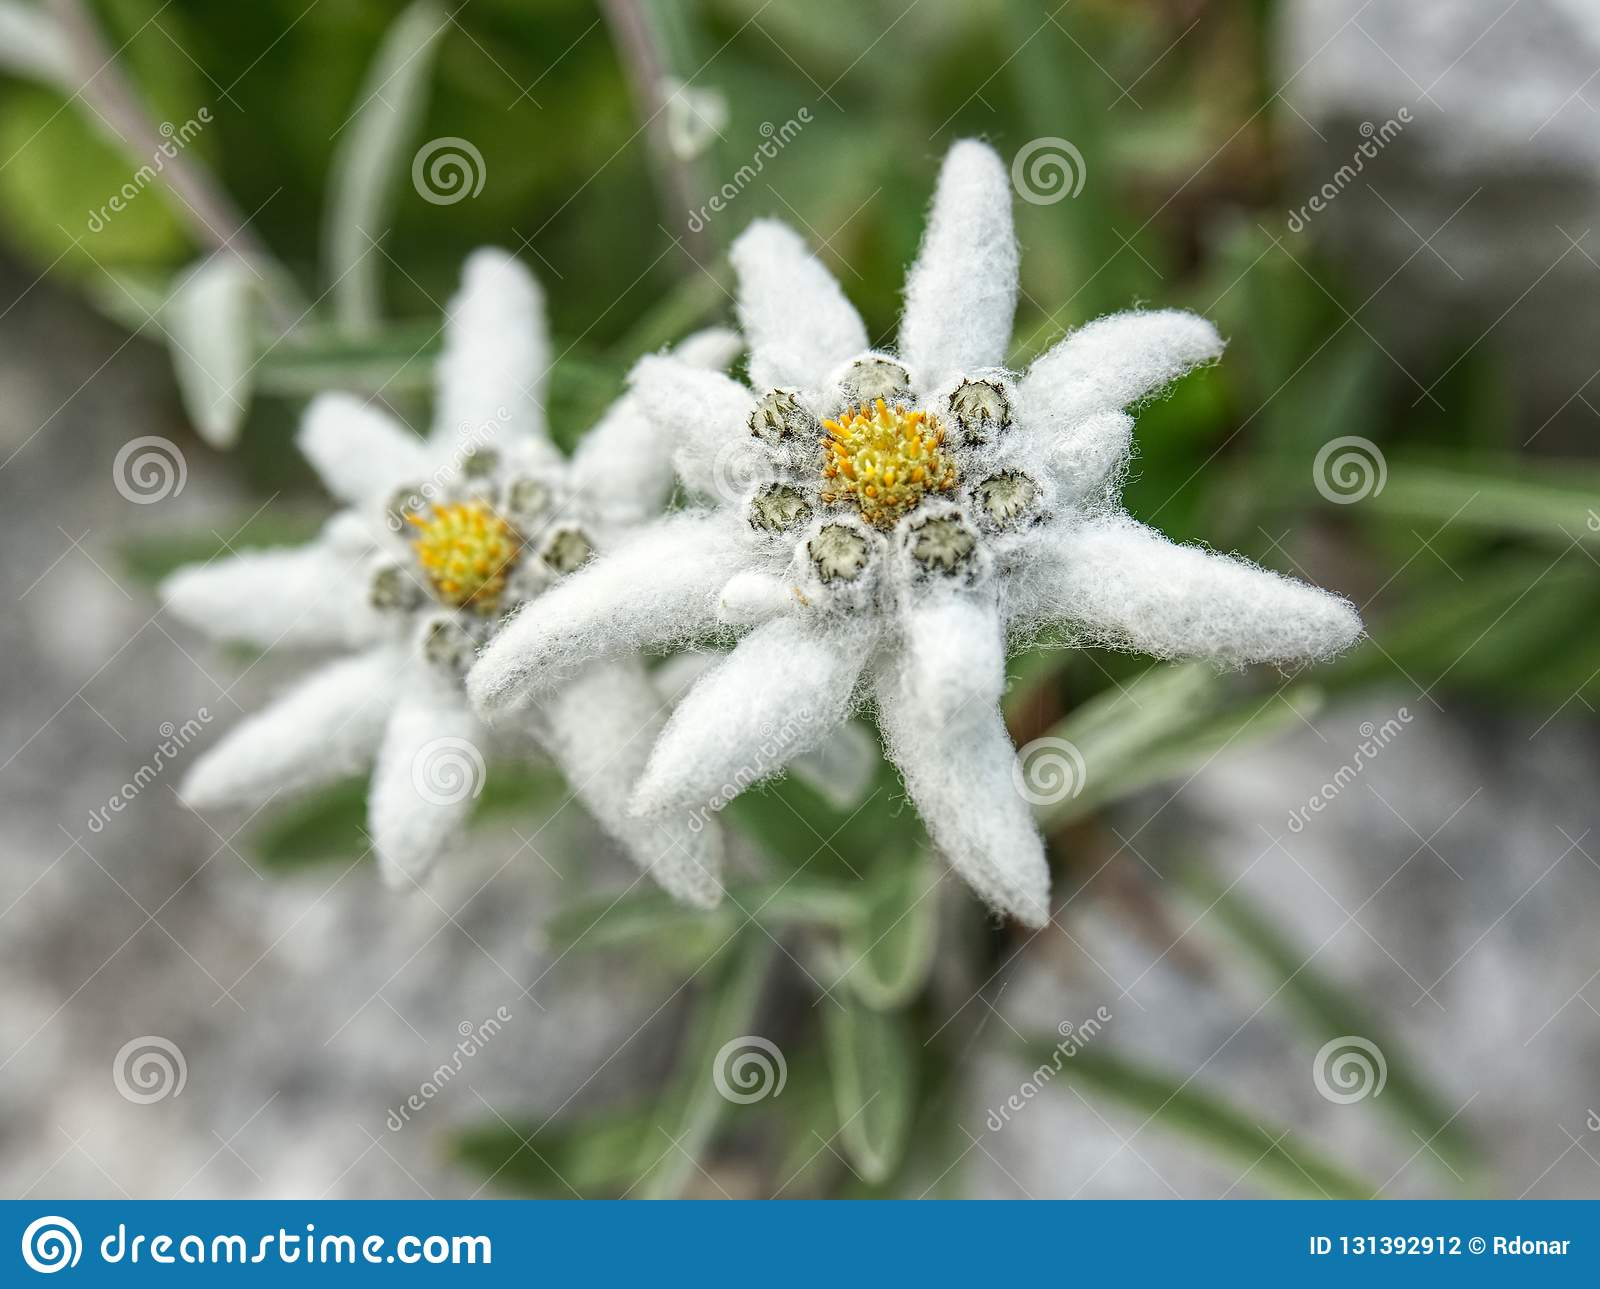 Edelweiss beautiful mountain flower. Scientific name - Leontopodium alpinum